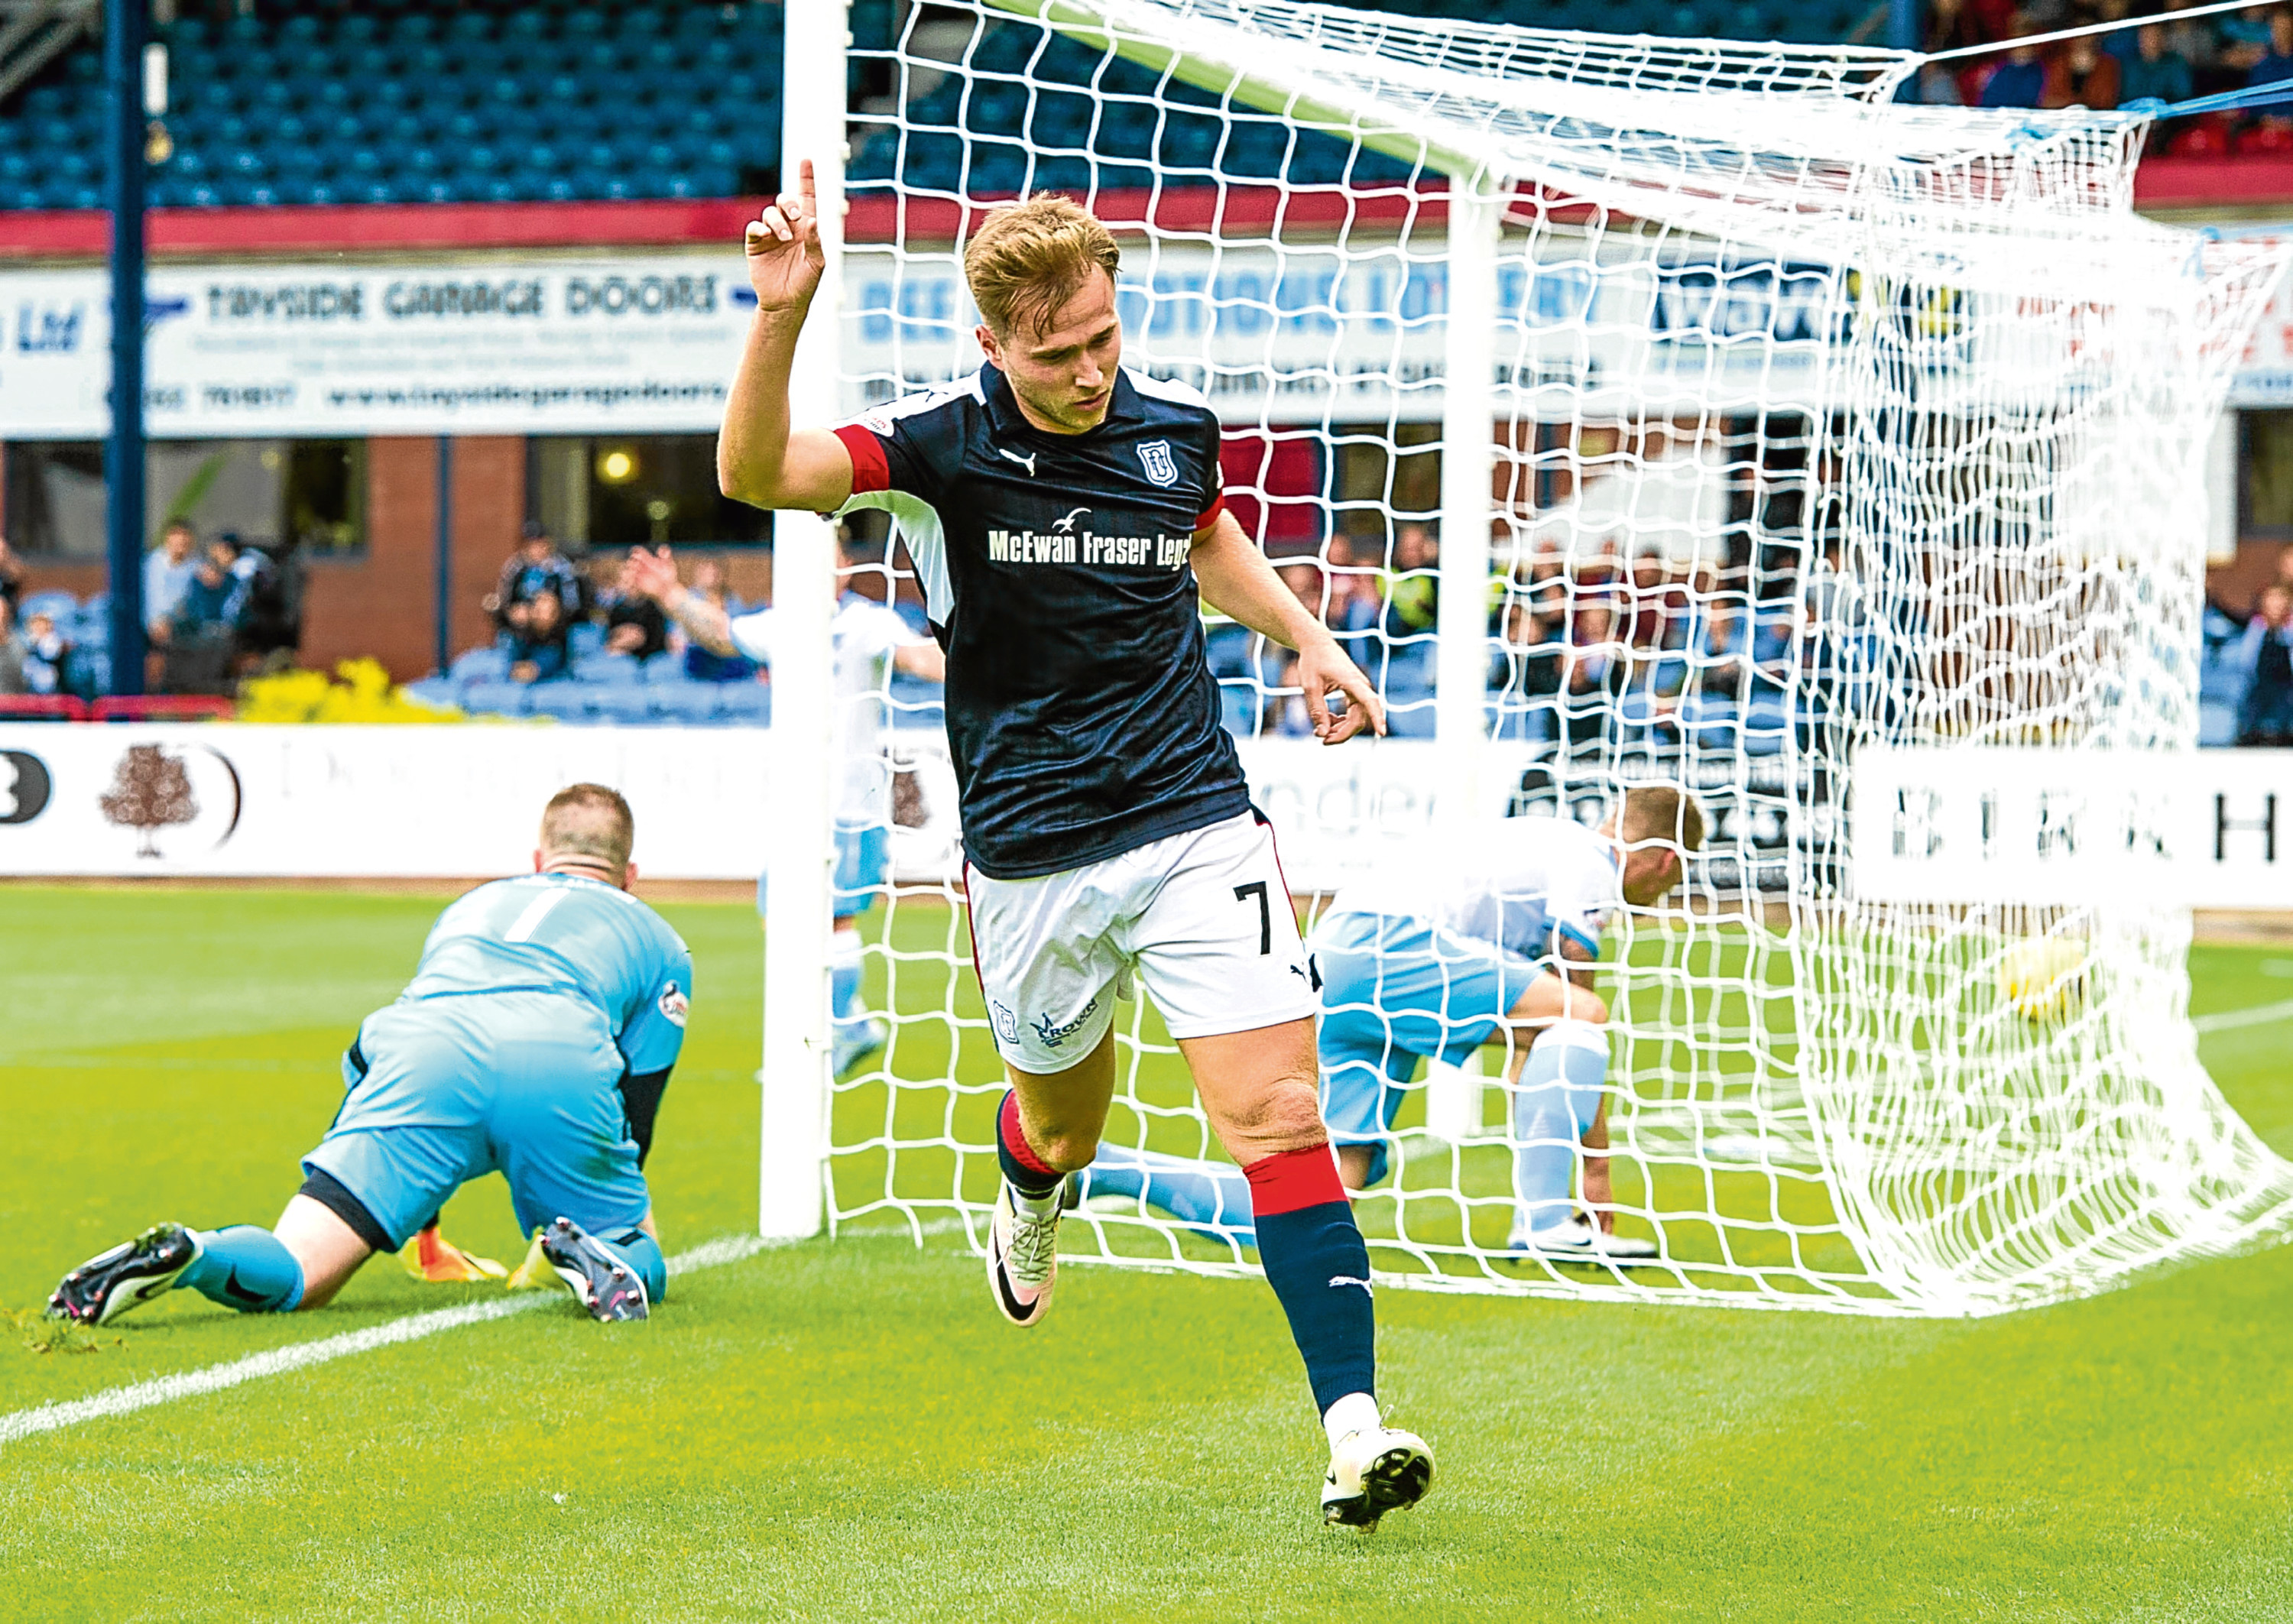 Dundee attacker Greg Stewart could be the subject of a bidding war between a number of English League clubs with QPR now interested.